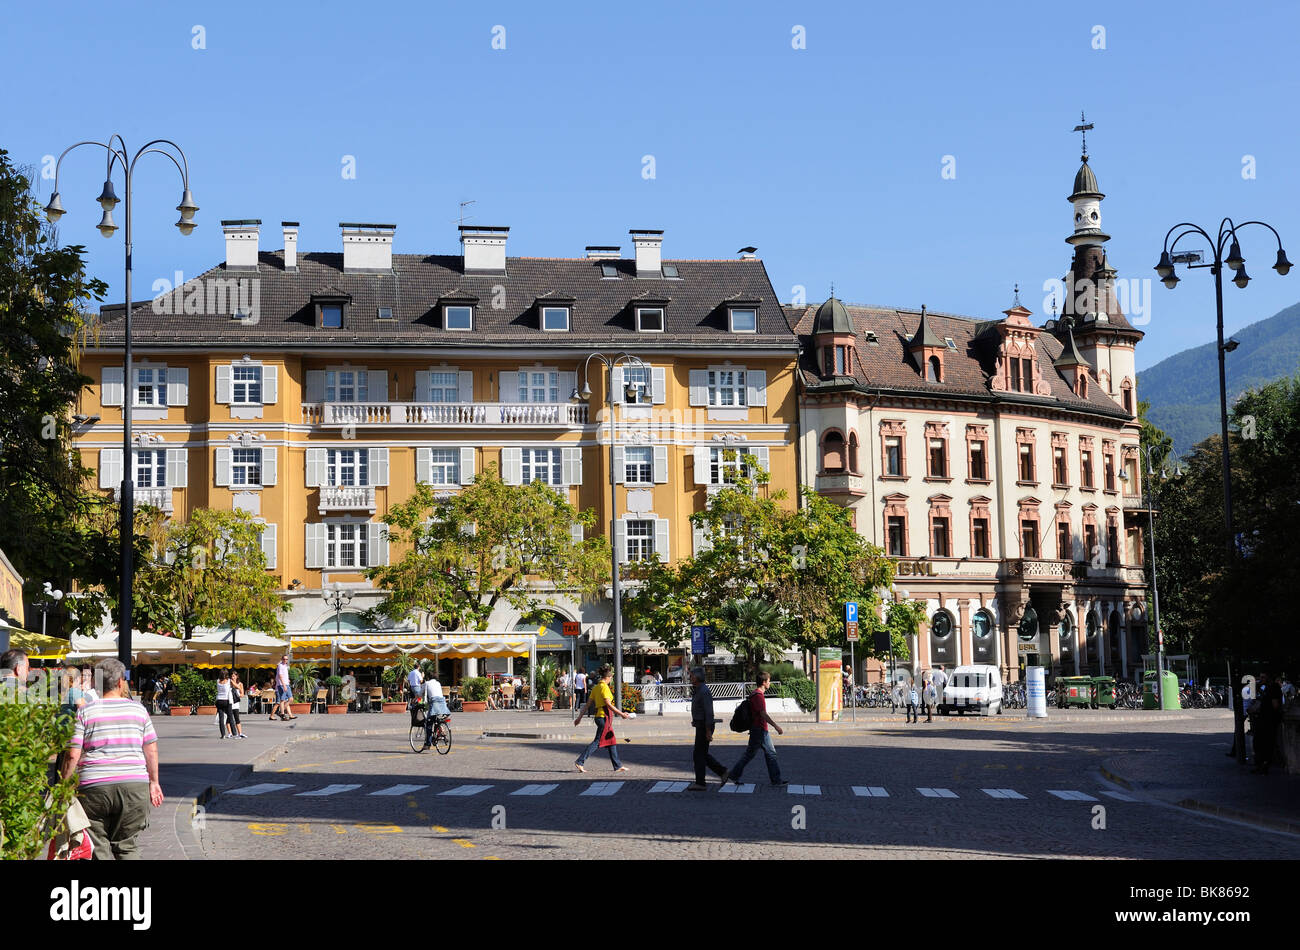 Houses on the Piazza Walther square, Bolzano, South Tyrol, Tyrol, Italy, Europe - Stock Image